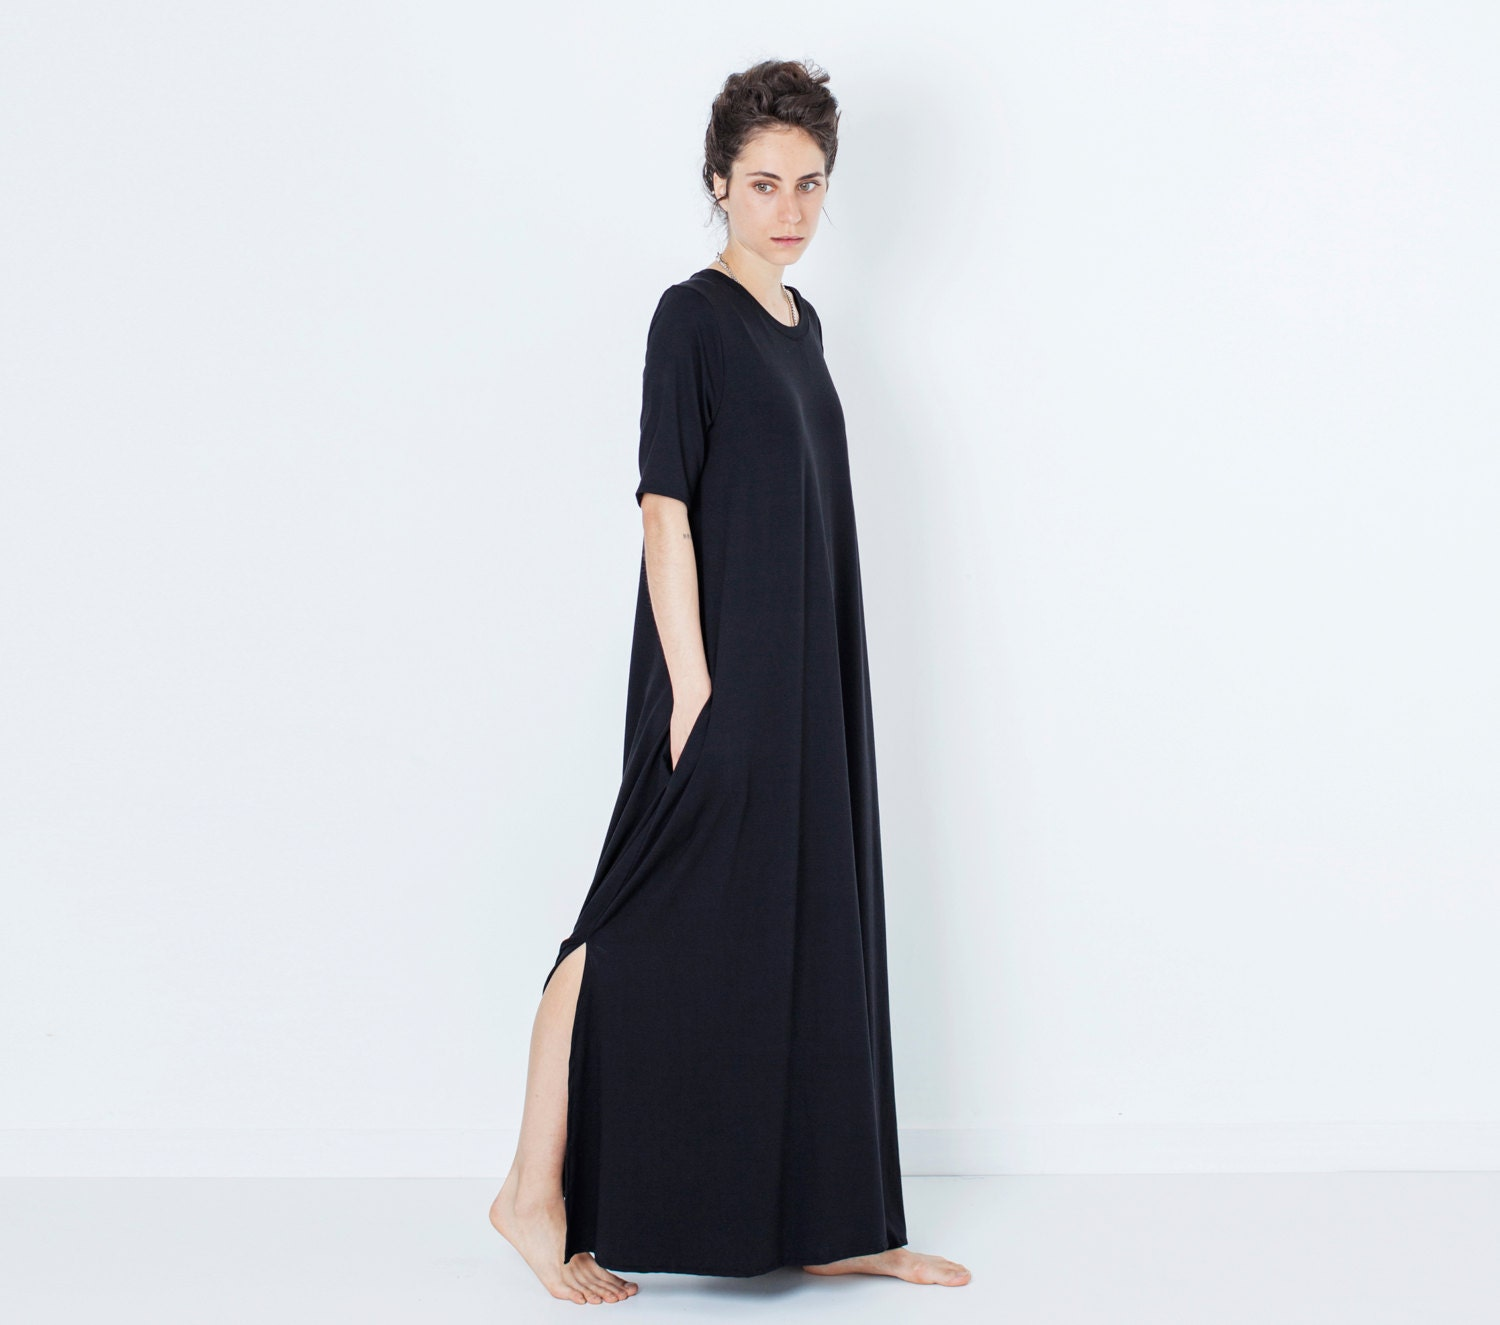 Unique Talking About The Gaining Prominence Of Unisex Clothing, They Say, &quotalthough, There Is A Separate Unisex Section Which Incorporates Gender Neutral Fashion, The Gap Between Mens And Womens Fashion Will  Incorporates Kaftan